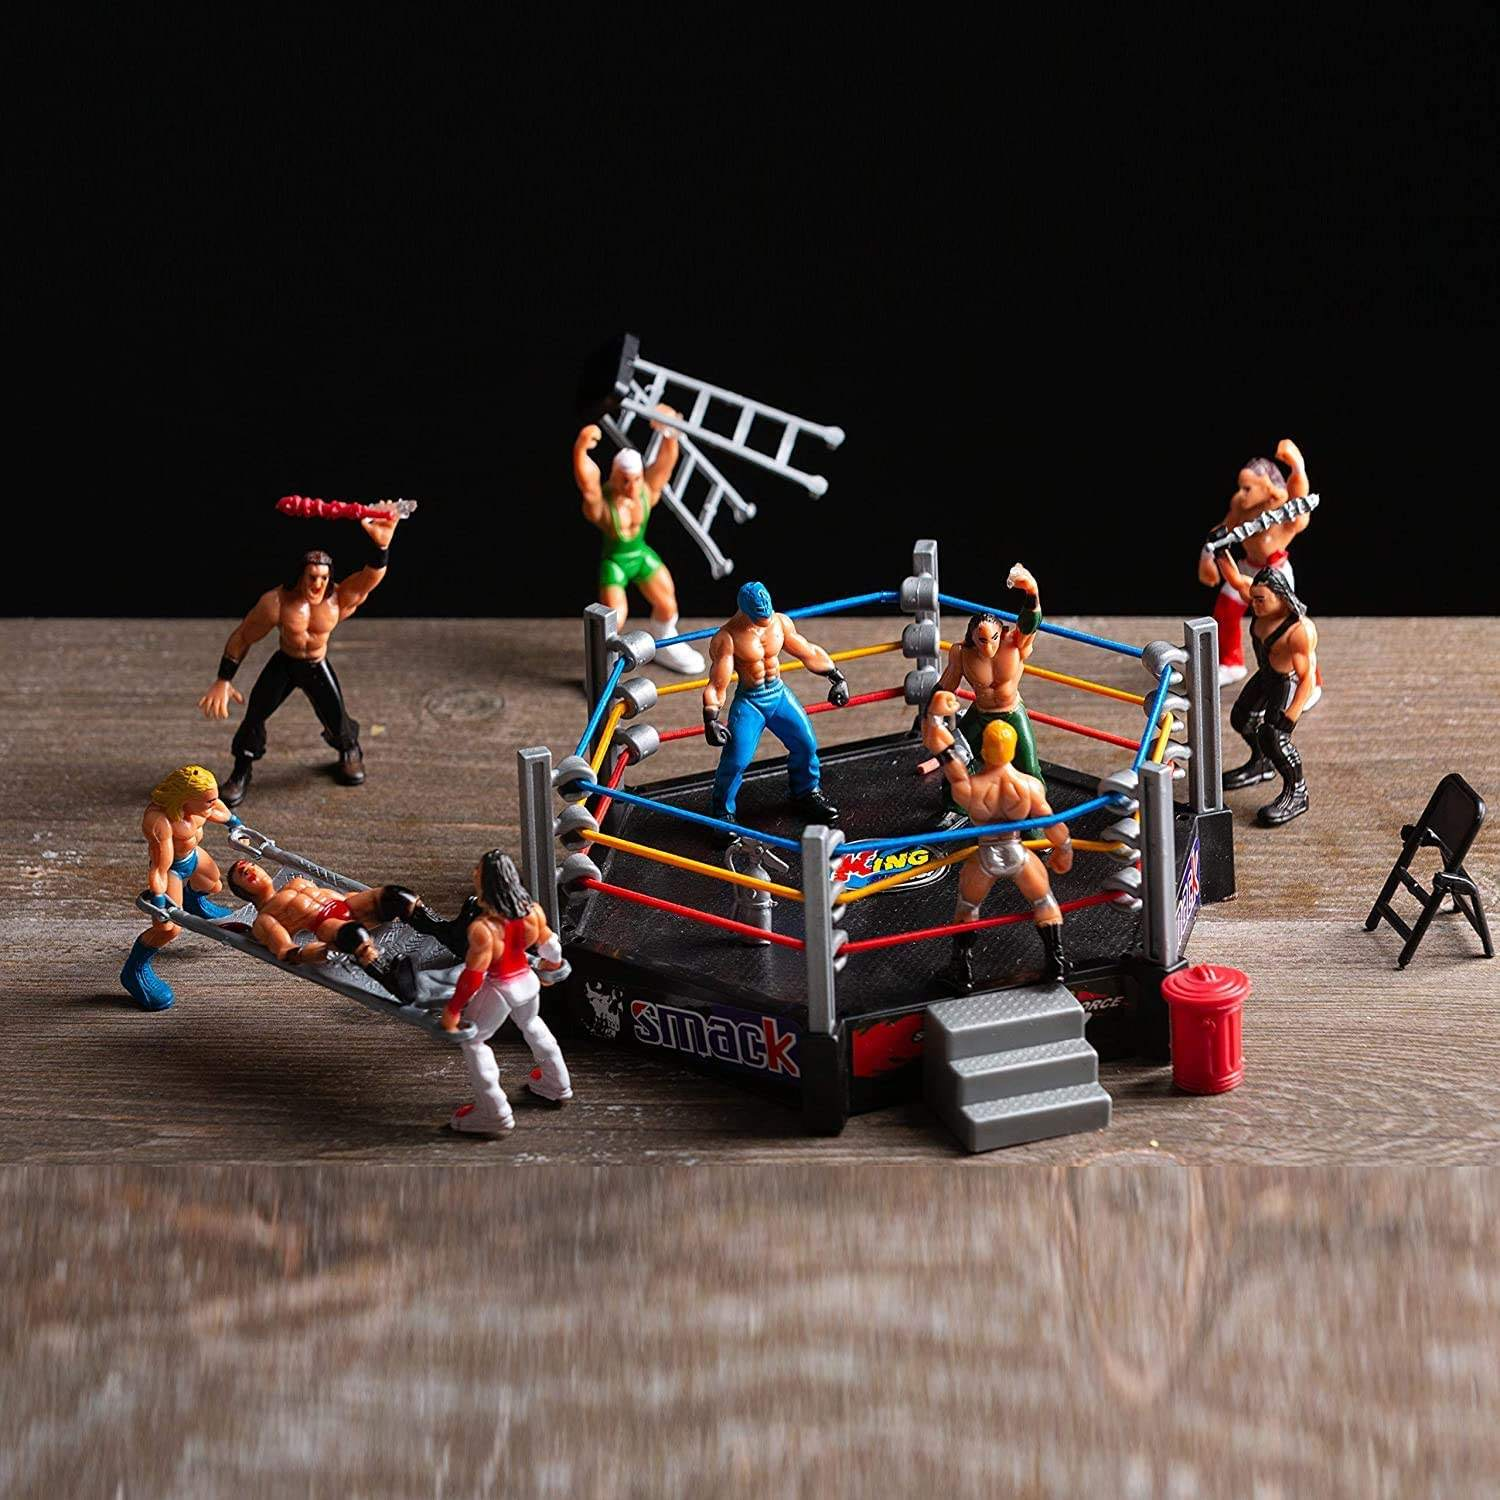 32Pcs Wrestling Toys for Kids Wrestler Warriors Toys with Ring & Realistic Accessories Fun Miniature Fighting WWE Action Figures